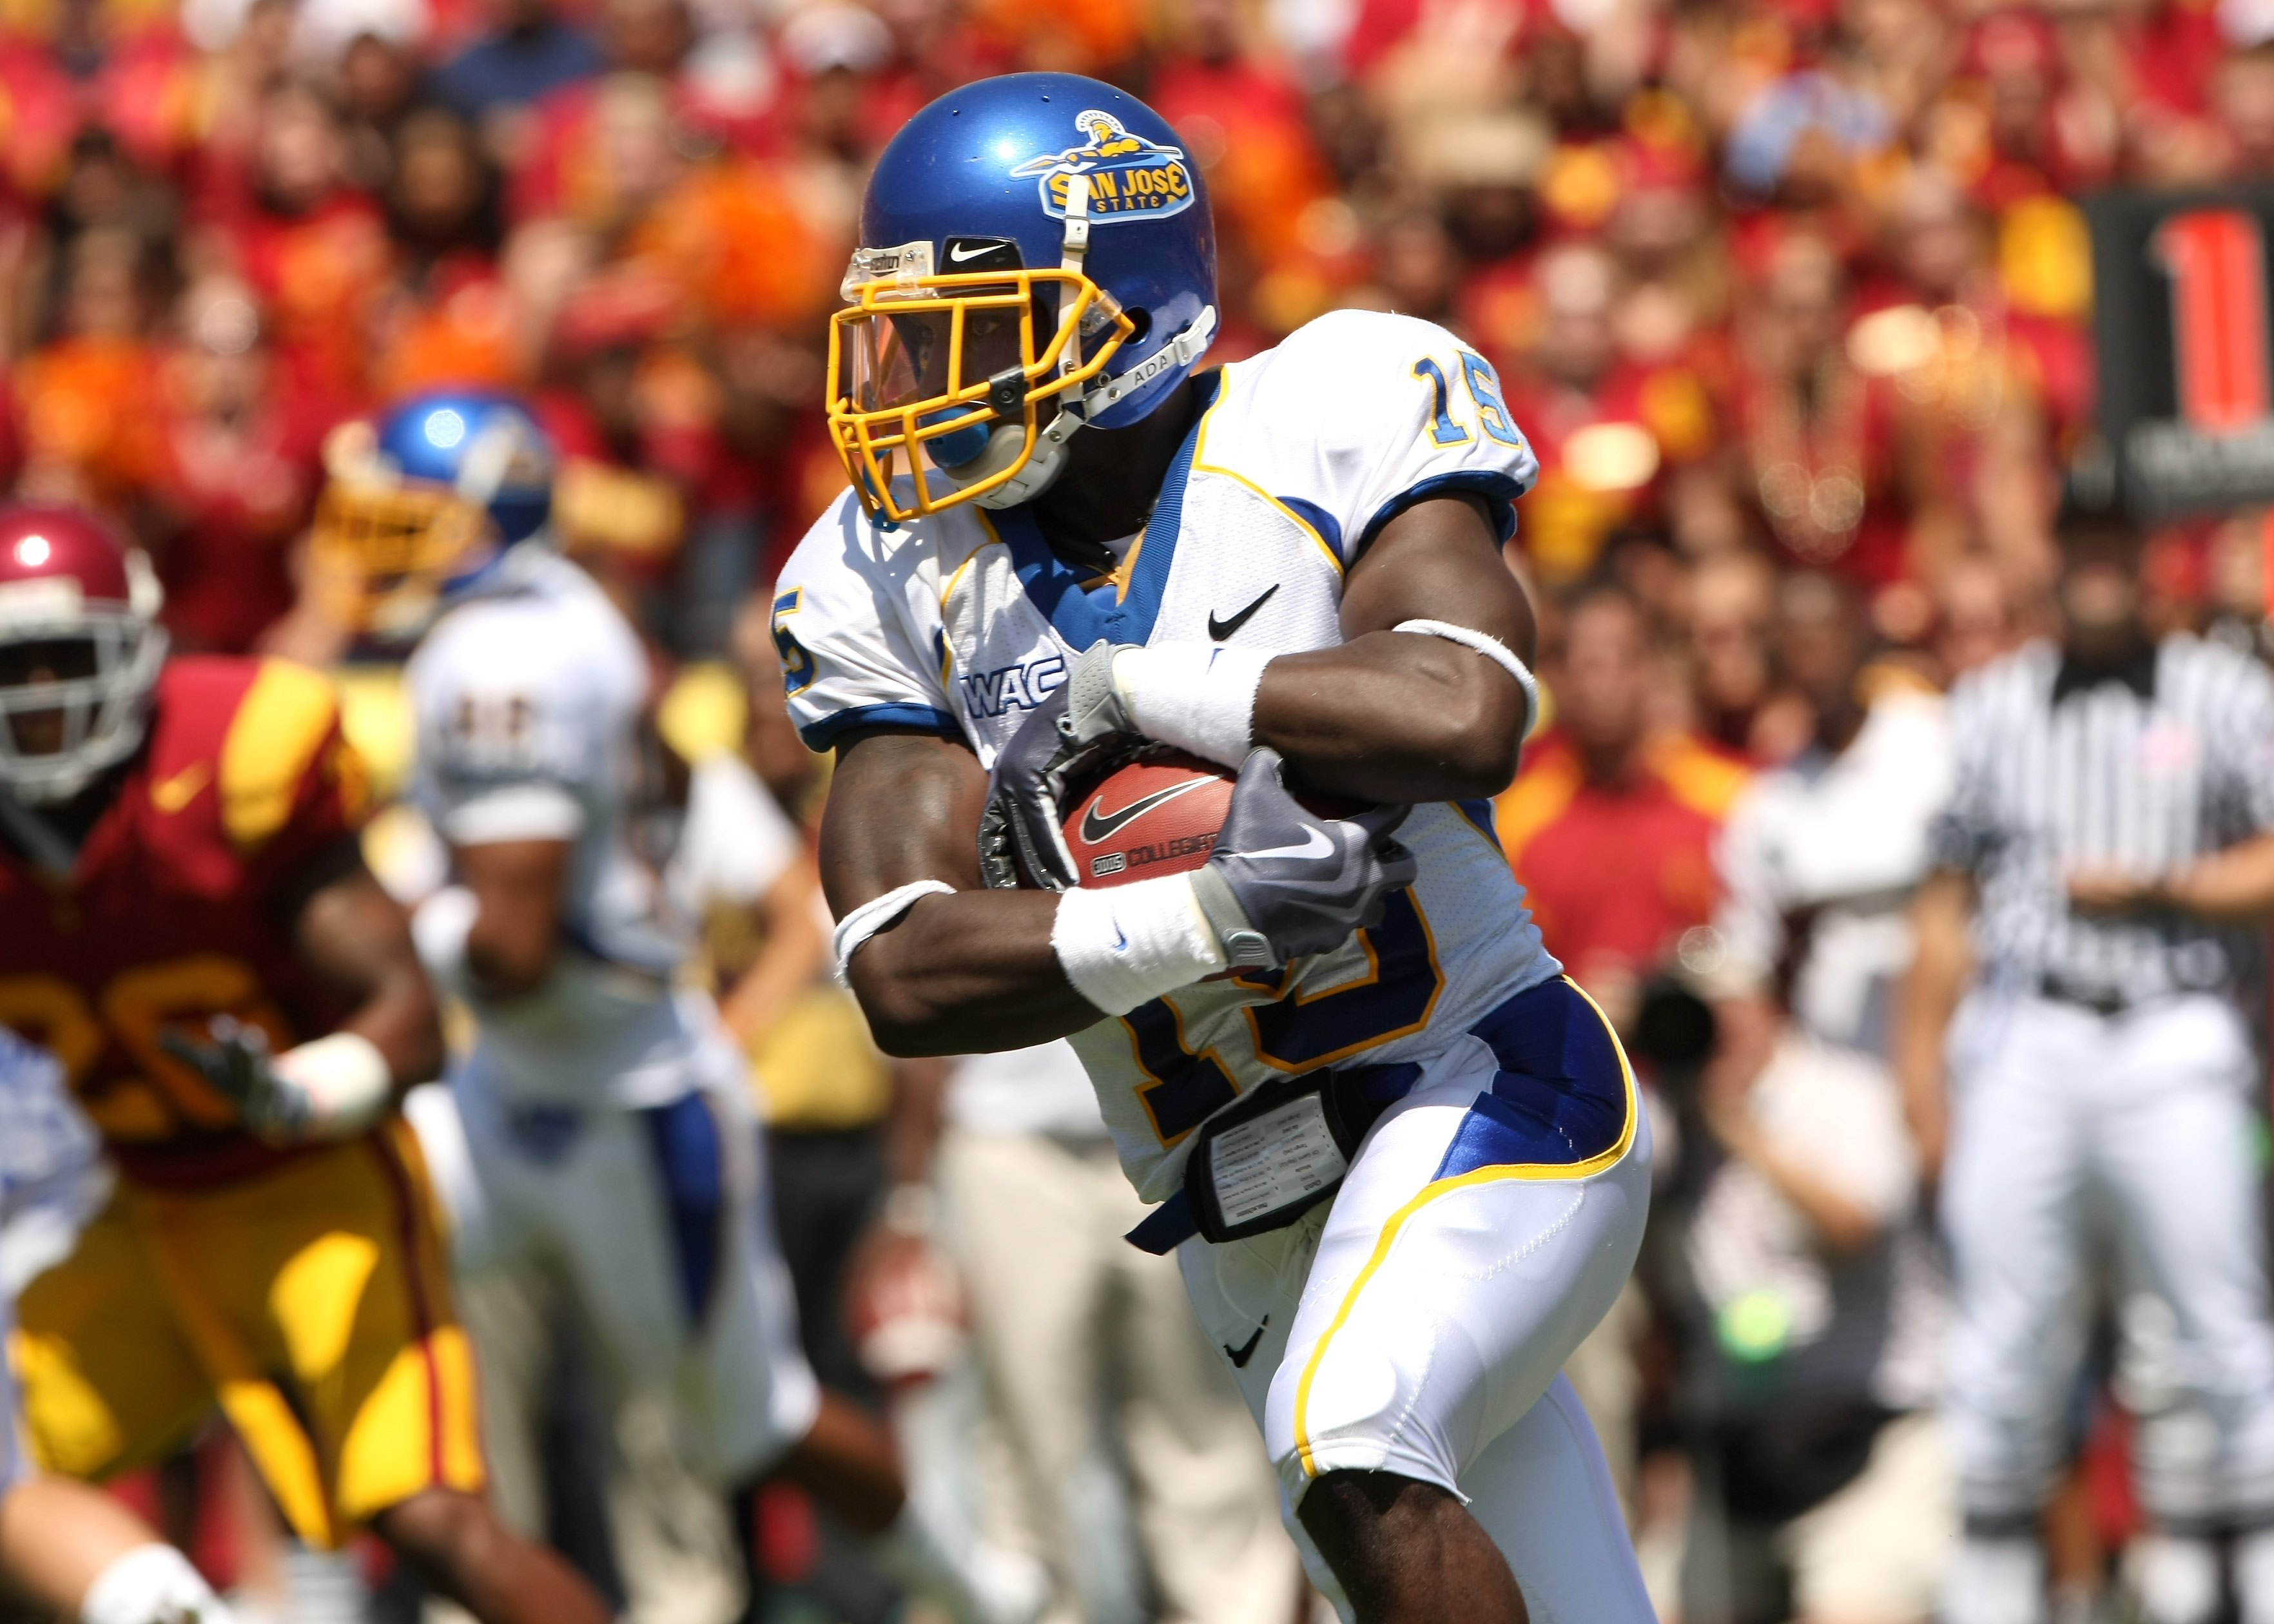 LOS ANGELES, CA - SEPTEMBER 05:  Running back Brandon Rutley #15 of the San Jose State Spartans  carries the ball against the USC Trojans at the Los Angeles Coliseum in Los Angeles, California.   USC won 56-3.  (Photo by Stephen Dunn/Getty Images)